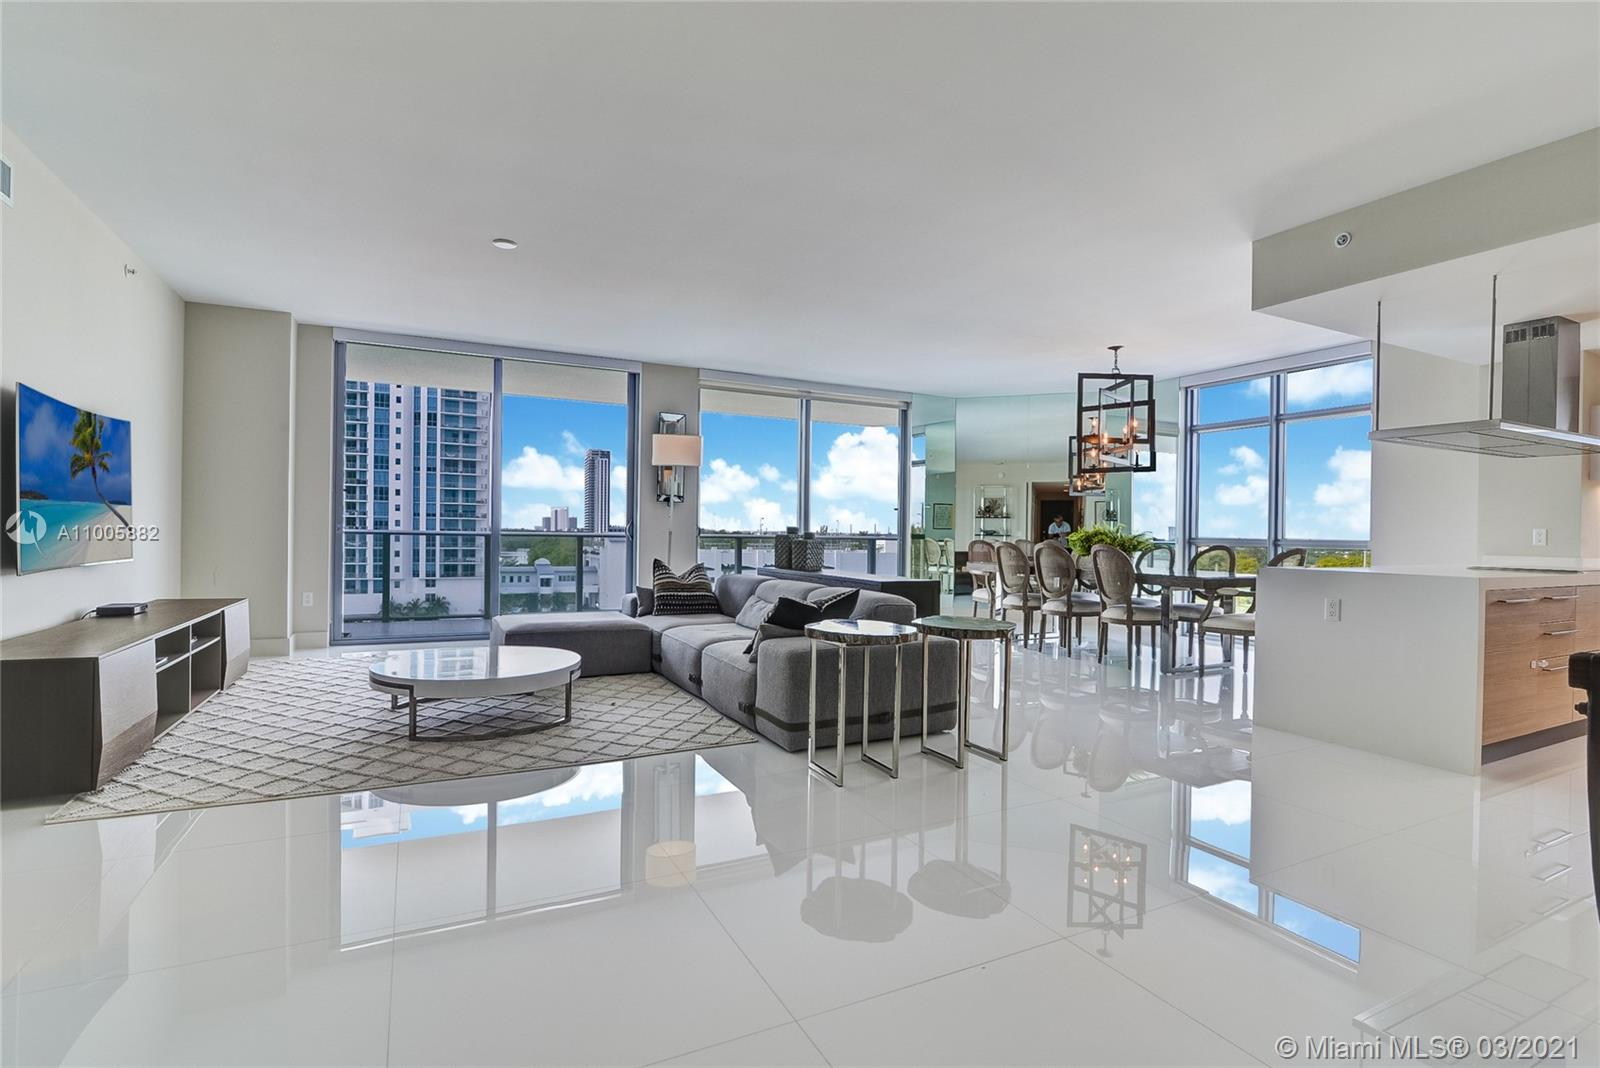 Marina Palms 2 #701 - 17301 Biscayne Blvd #701, North Miami Beach, FL 33160